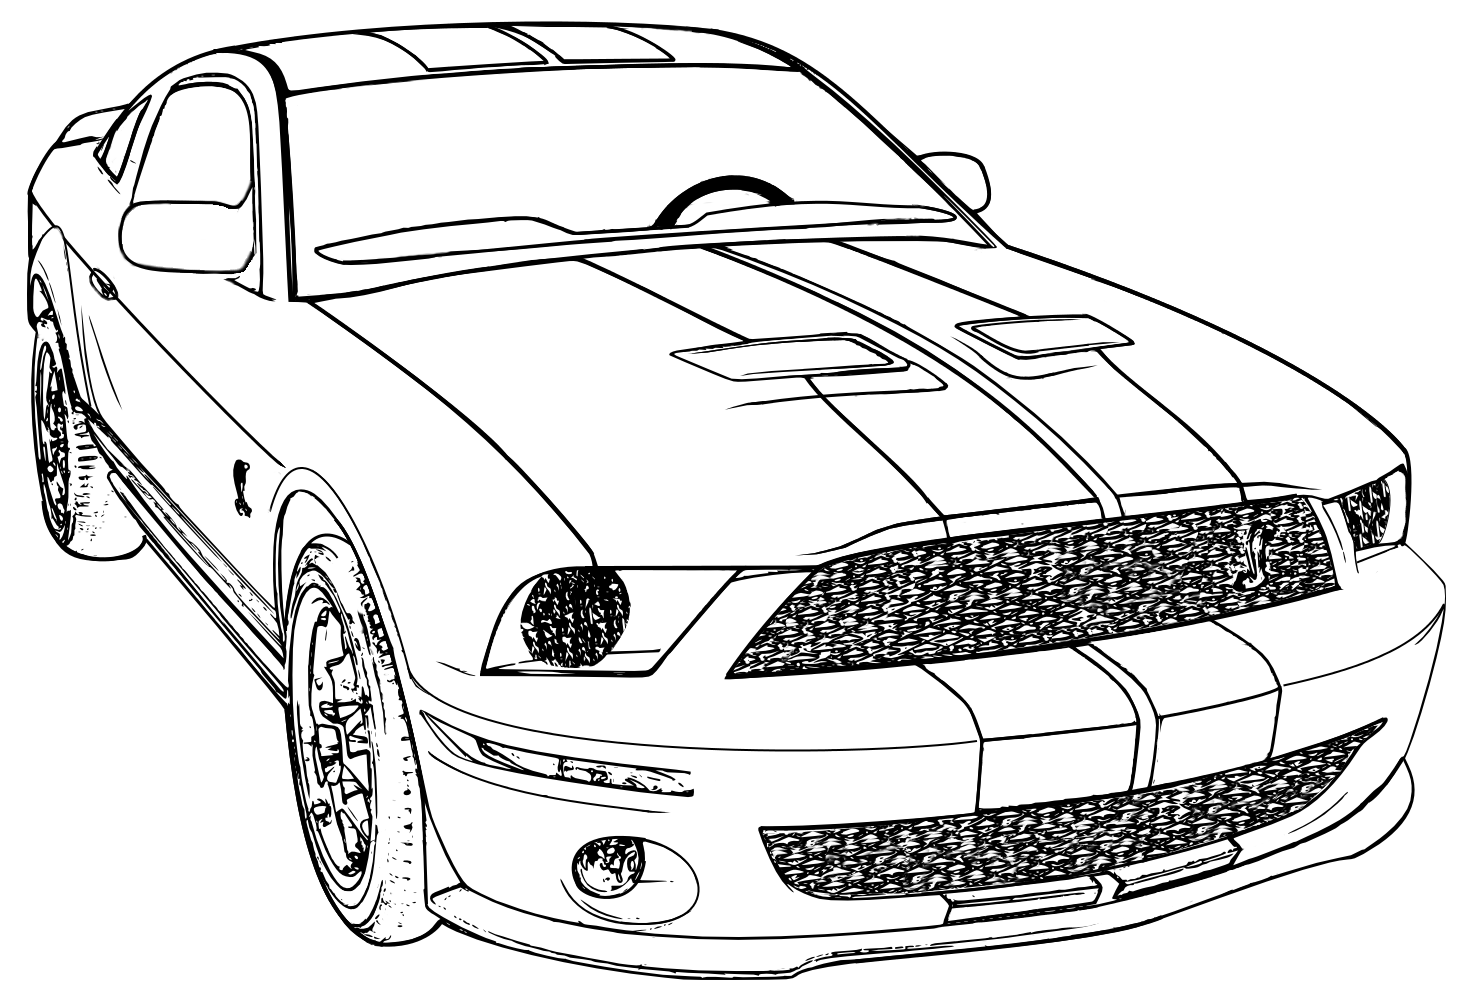 Printable coloring pages cars - Printable Mustang Car Car Coloring Page Ford Mustang